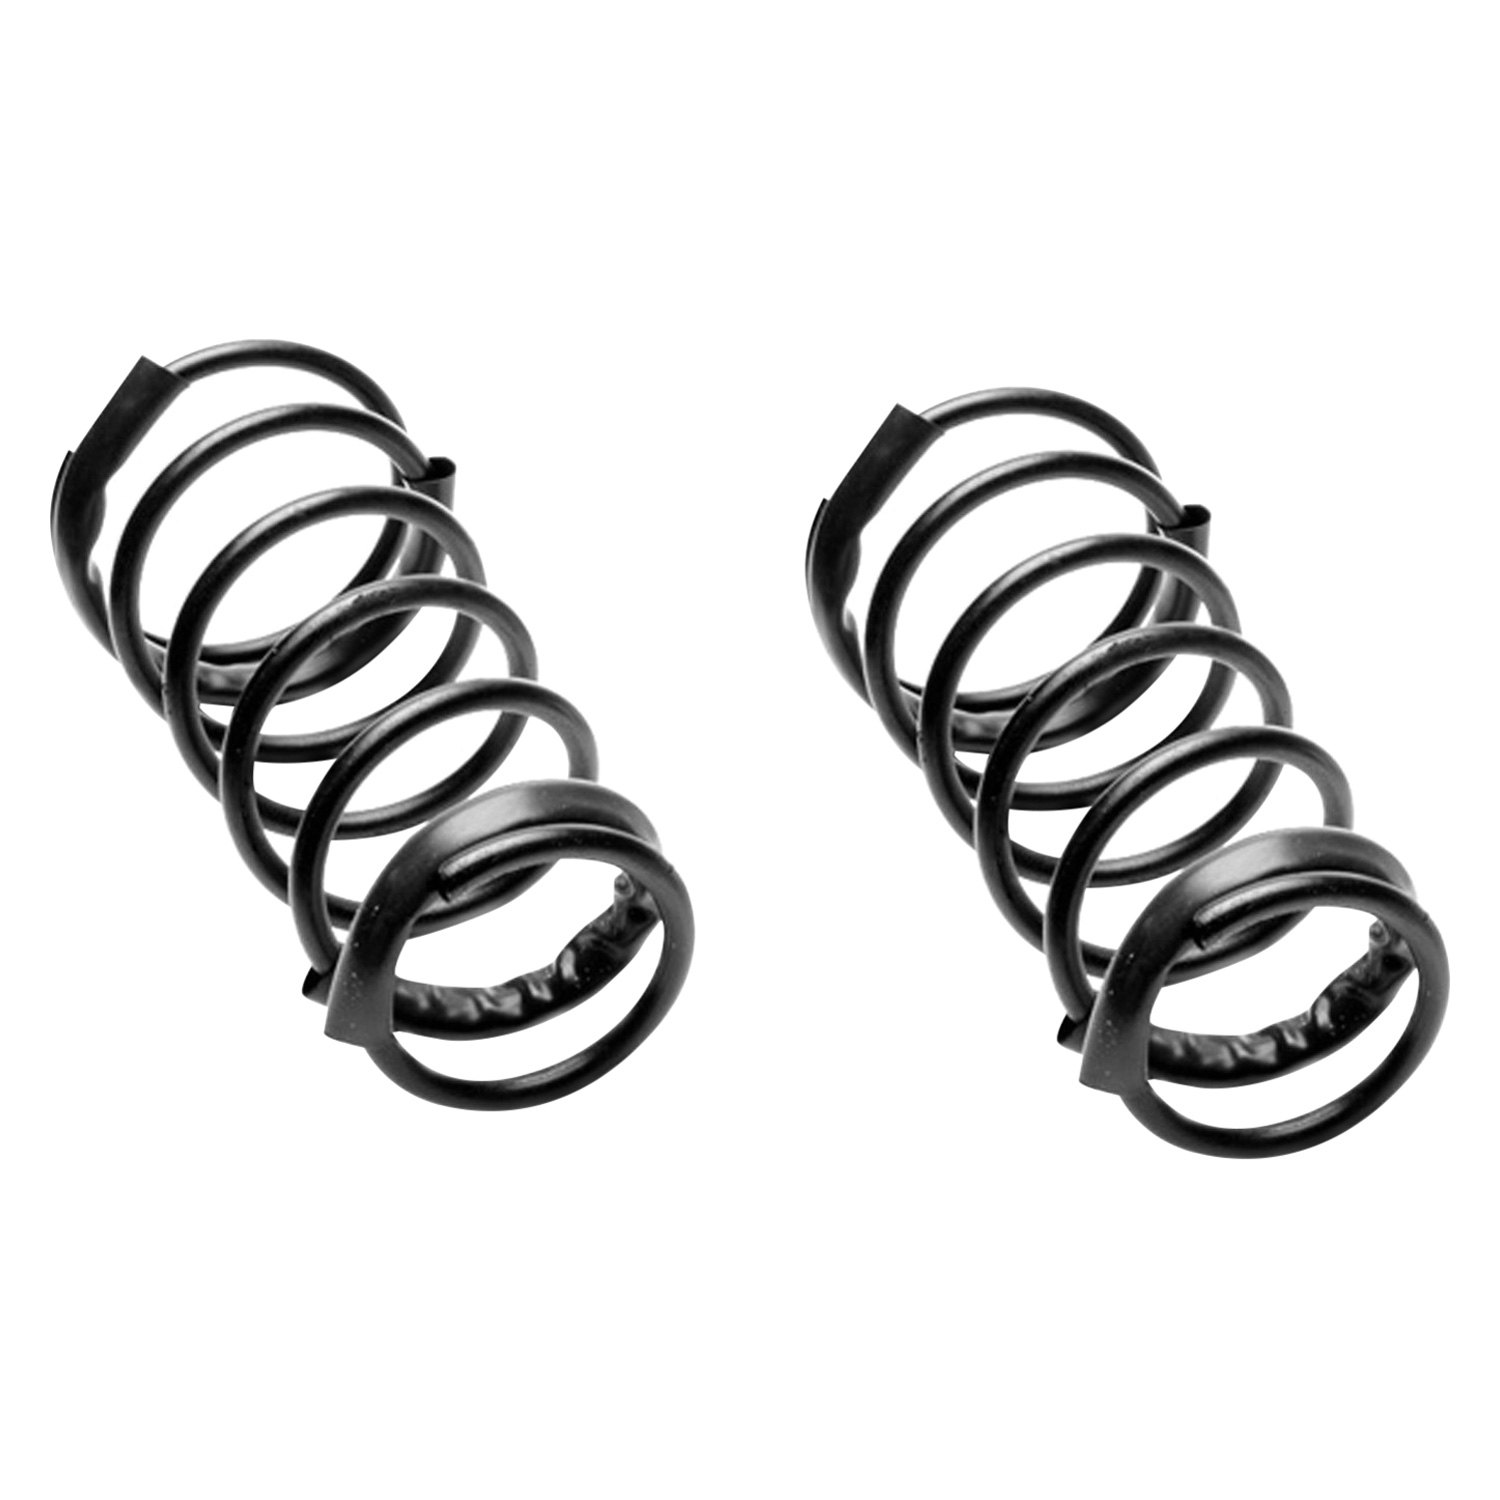 ACDelco 45H0222 Professional Front Coil Spring Set